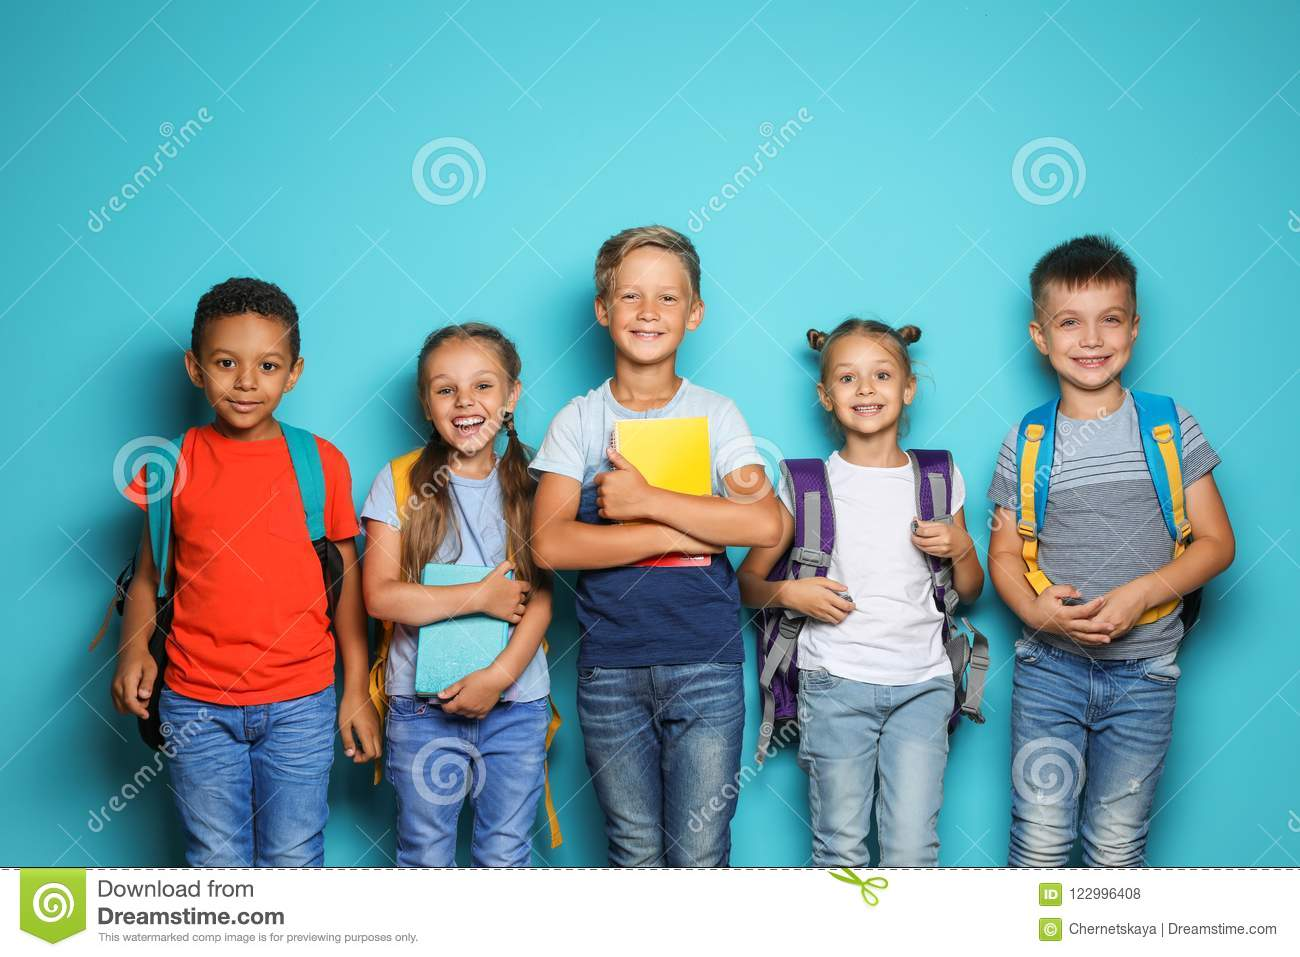 ae02ba104b Group of little children with backpacks and school supplies on color  background